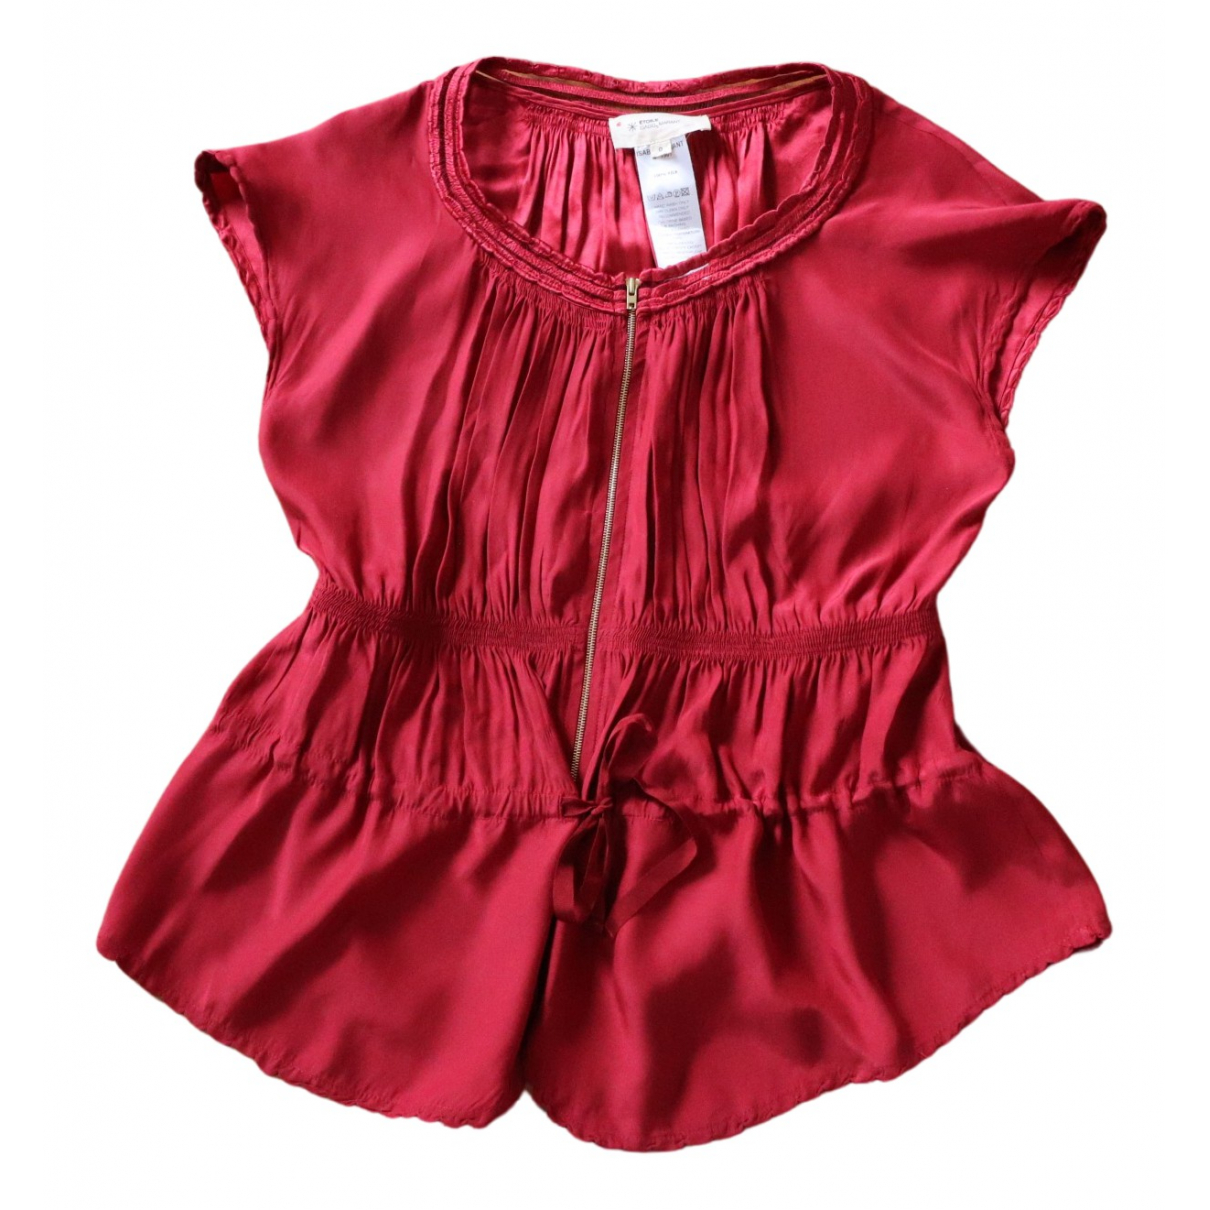 Isabel Marant Etoile \N Red Silk  top for Women 0 0-5